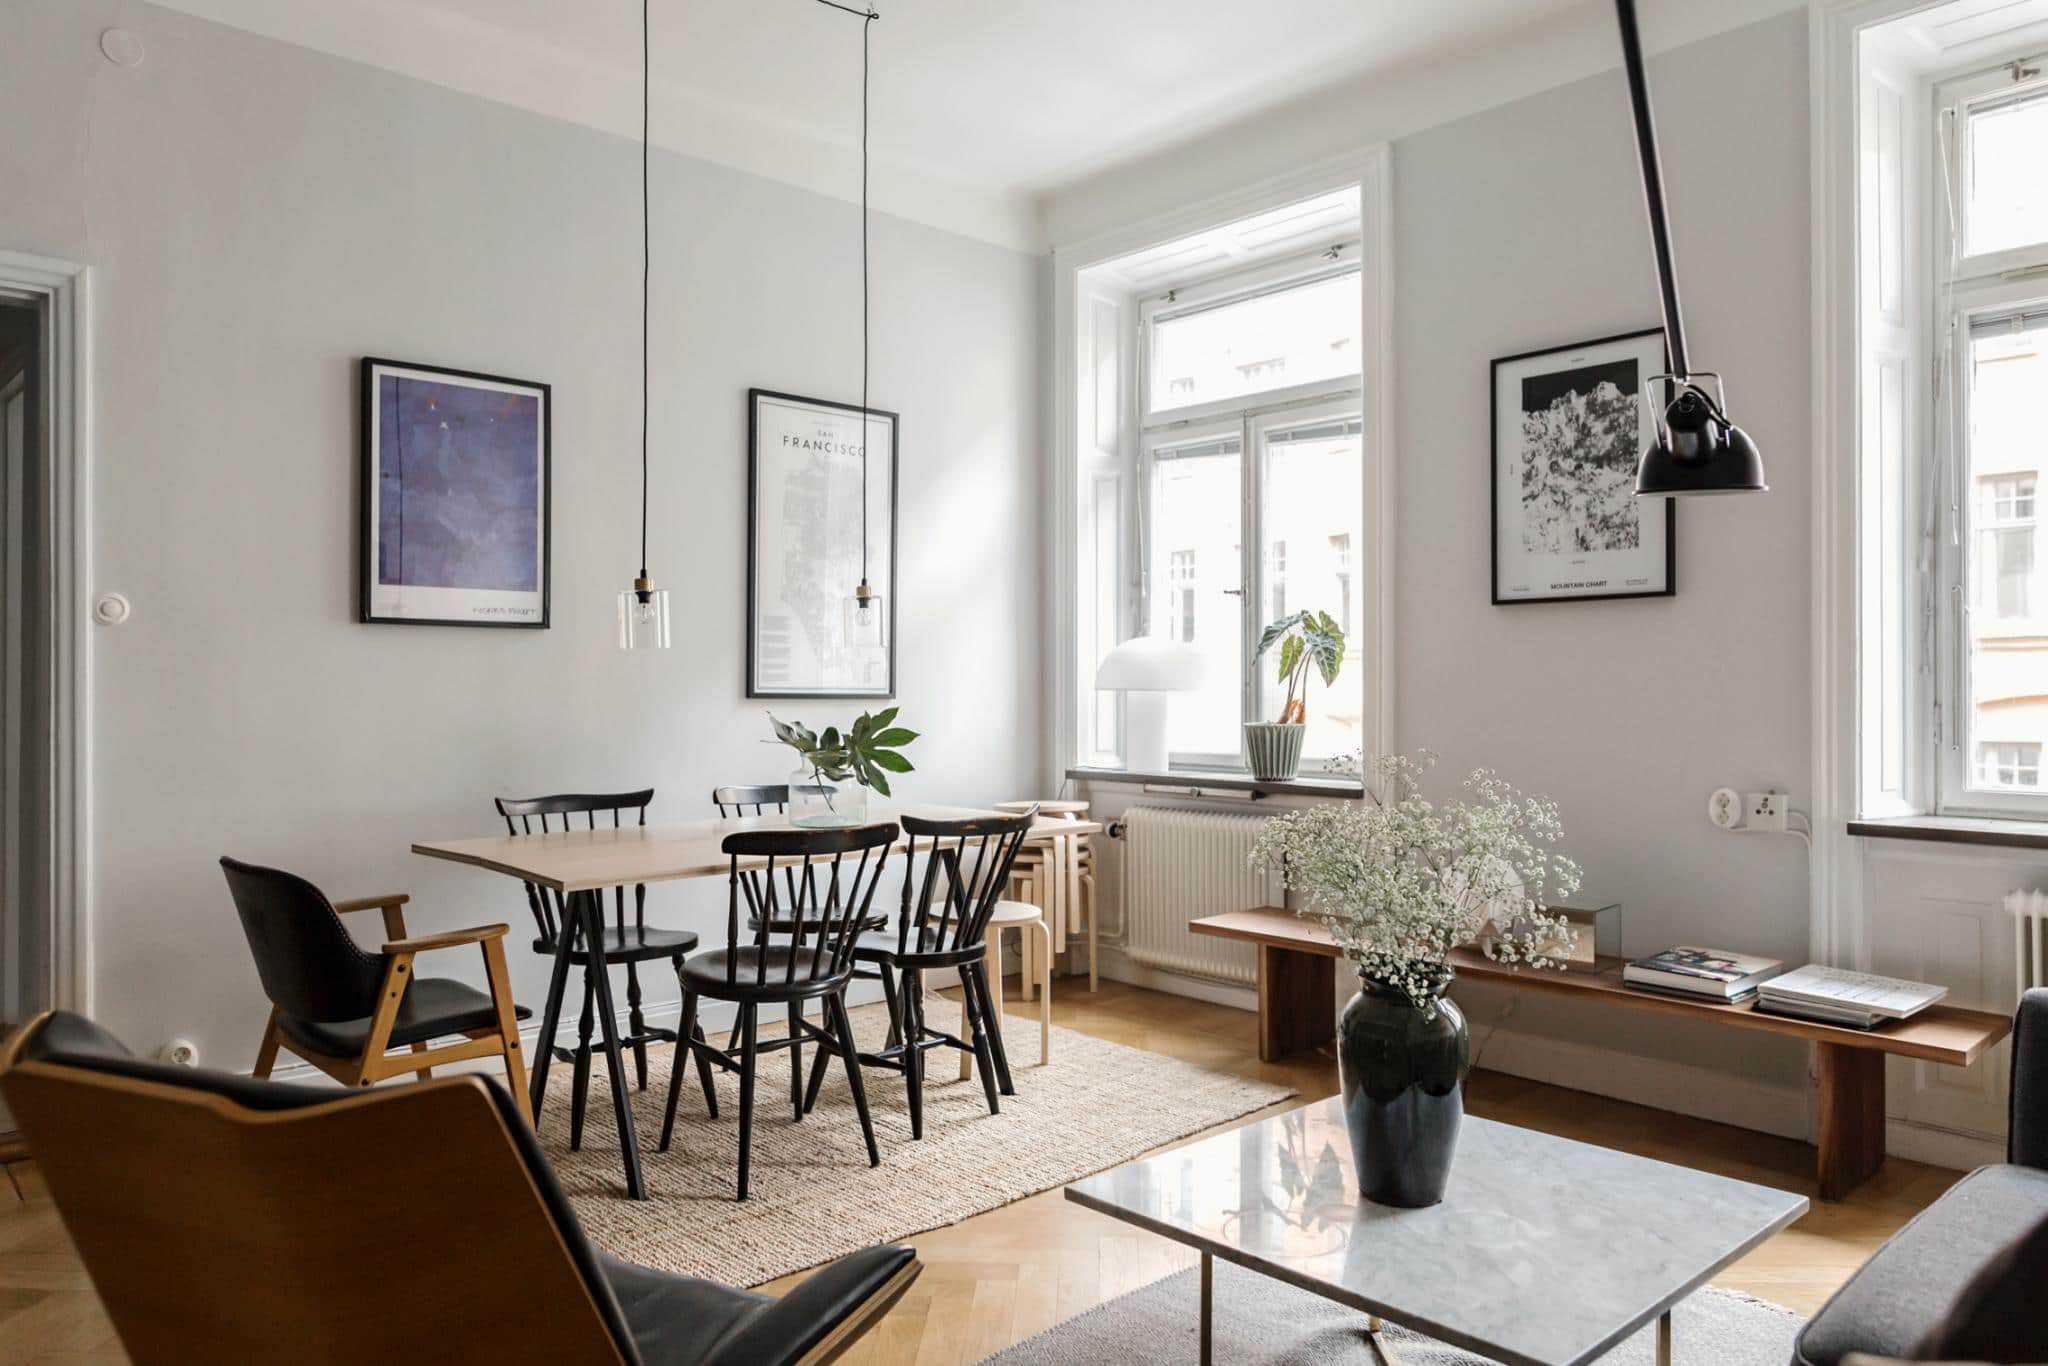 A Scandinavian Inspired Living Room With Grey Walls And Windows This Dreamy Swedish Apartment